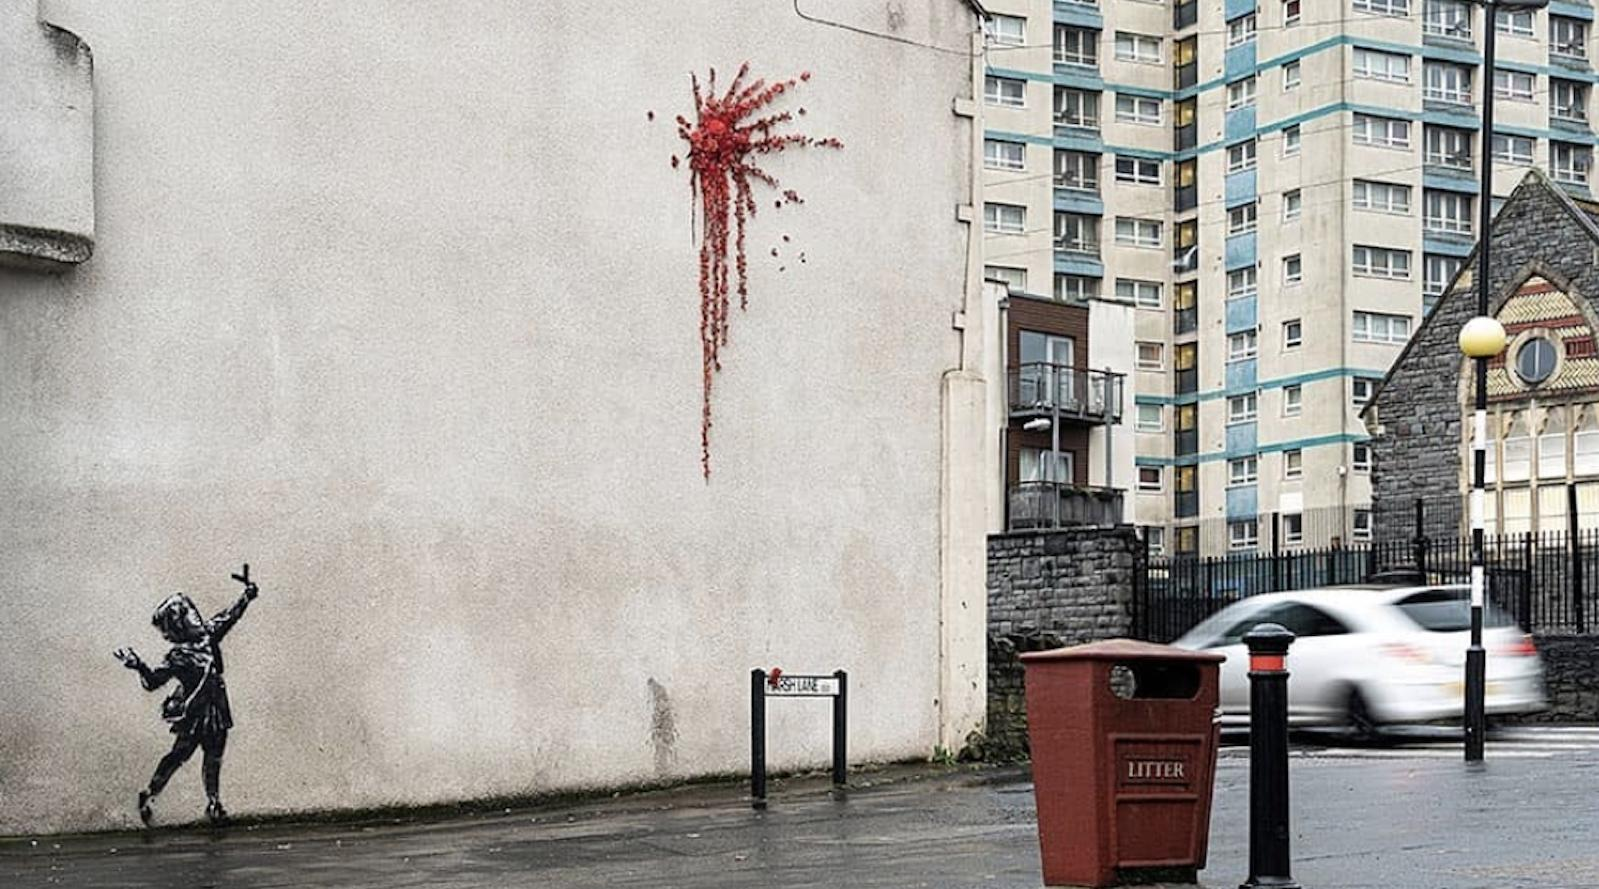 Banksy's Valentine's Day Mural in Bristol, UK